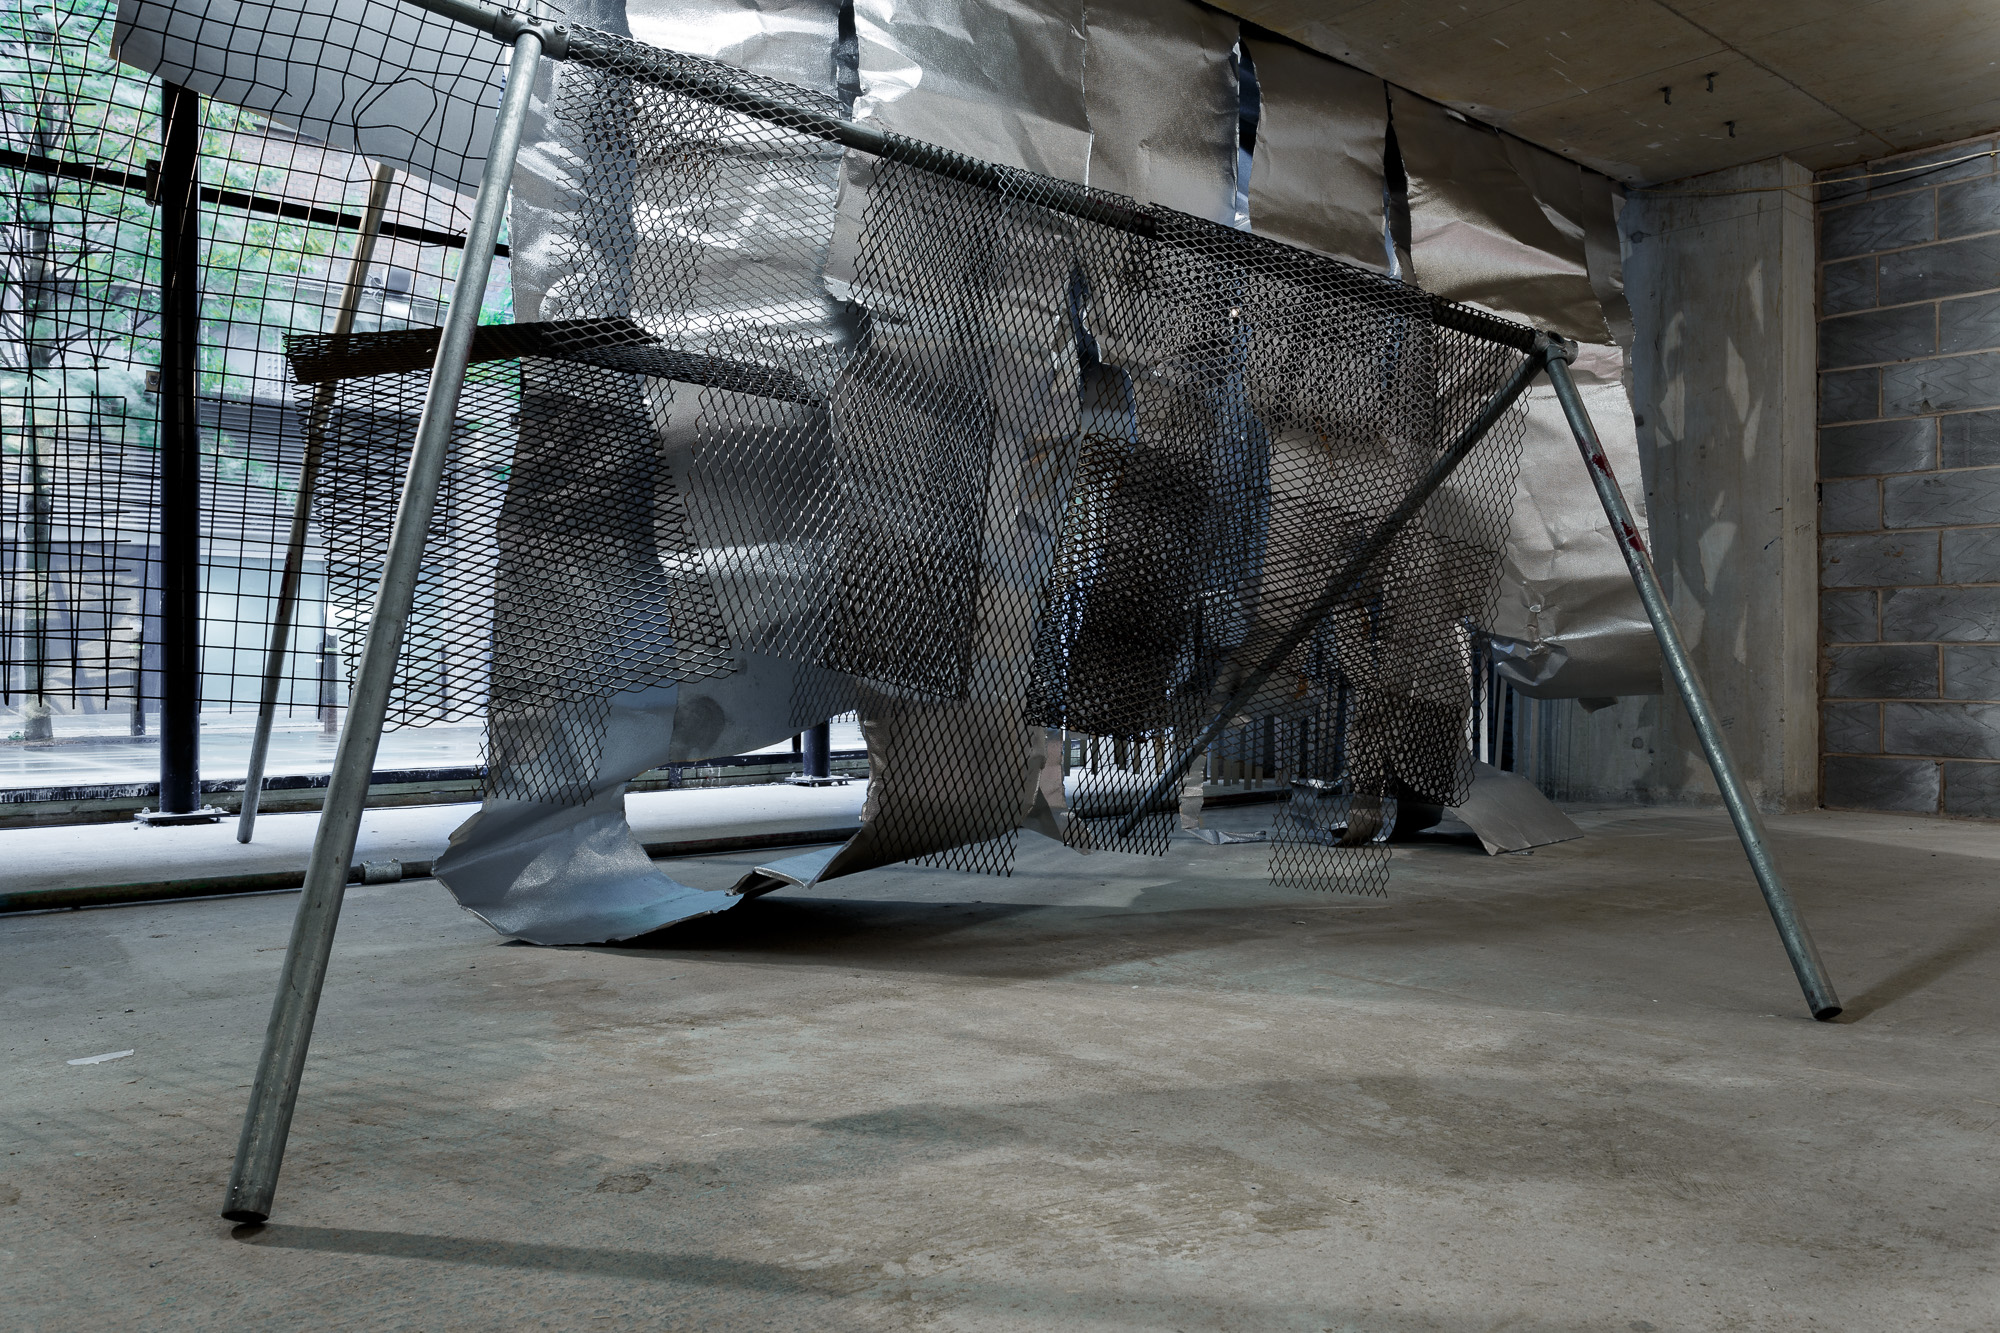 Custom Folds | 2017 | steel, aluminum | site-responsive installation at The Great Medical Disaster, Manchester, UK | dimensions variable | Image: Jules Lister